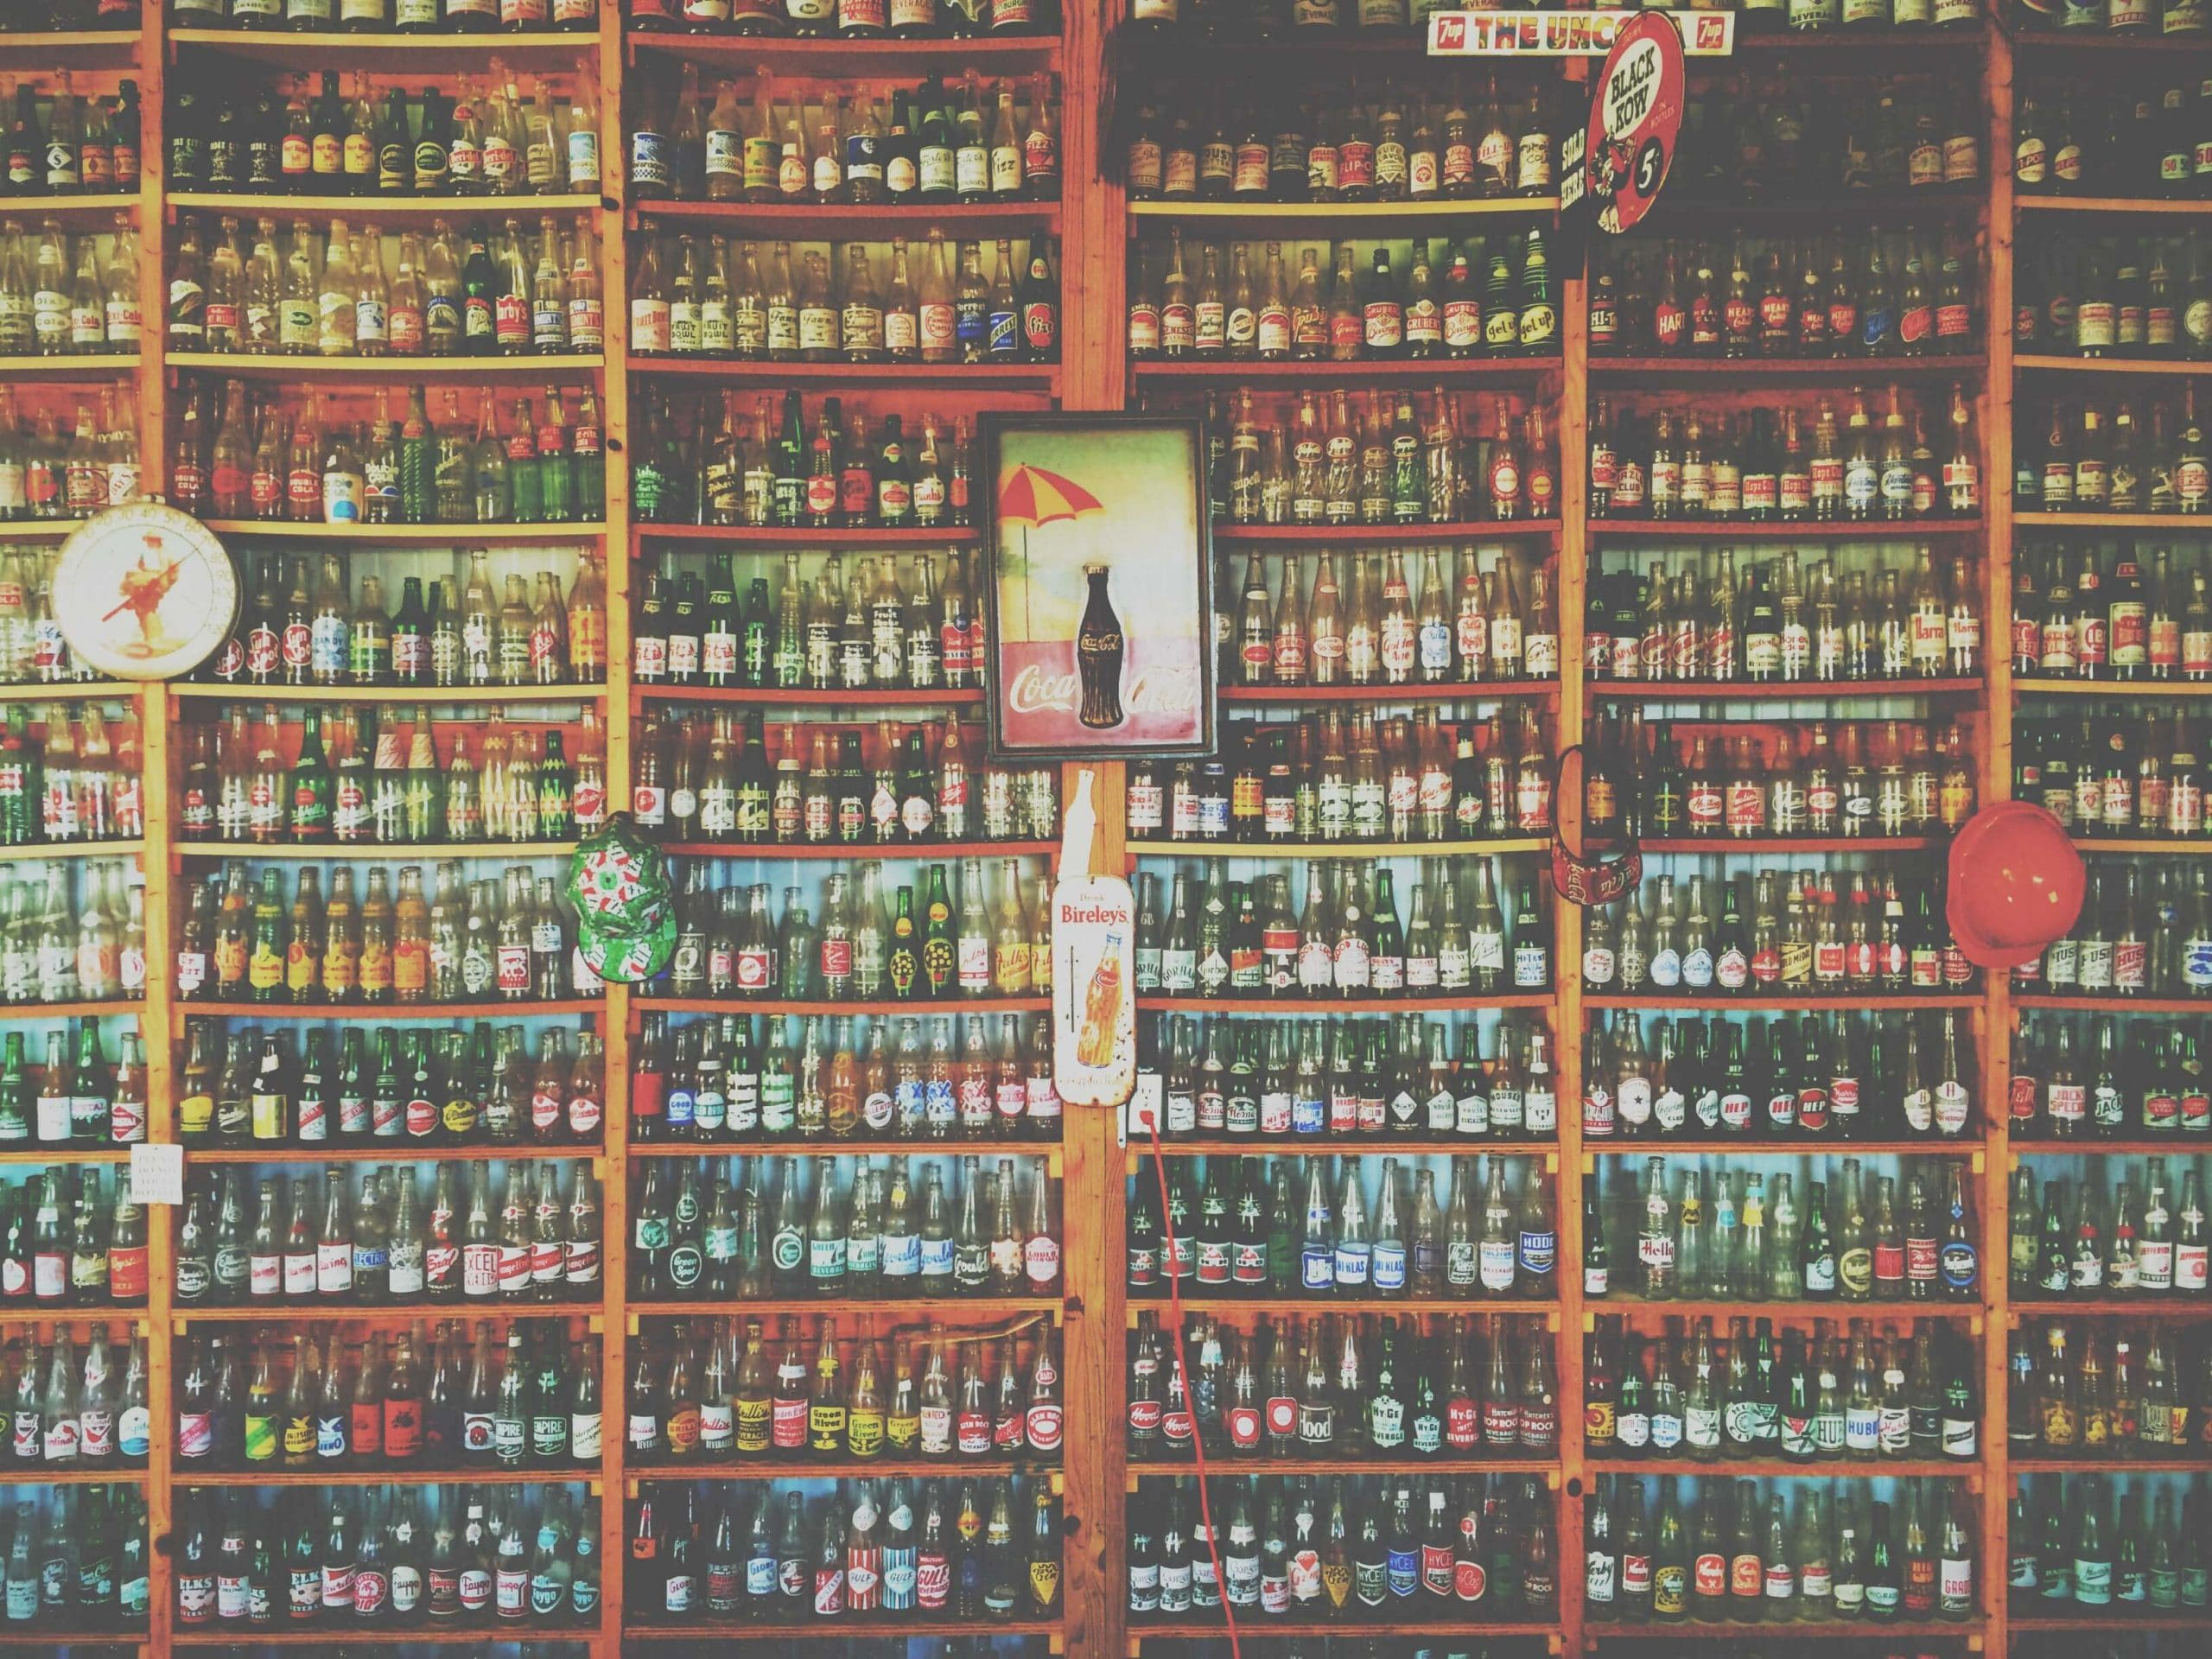 A bar shelf stacked with bottles